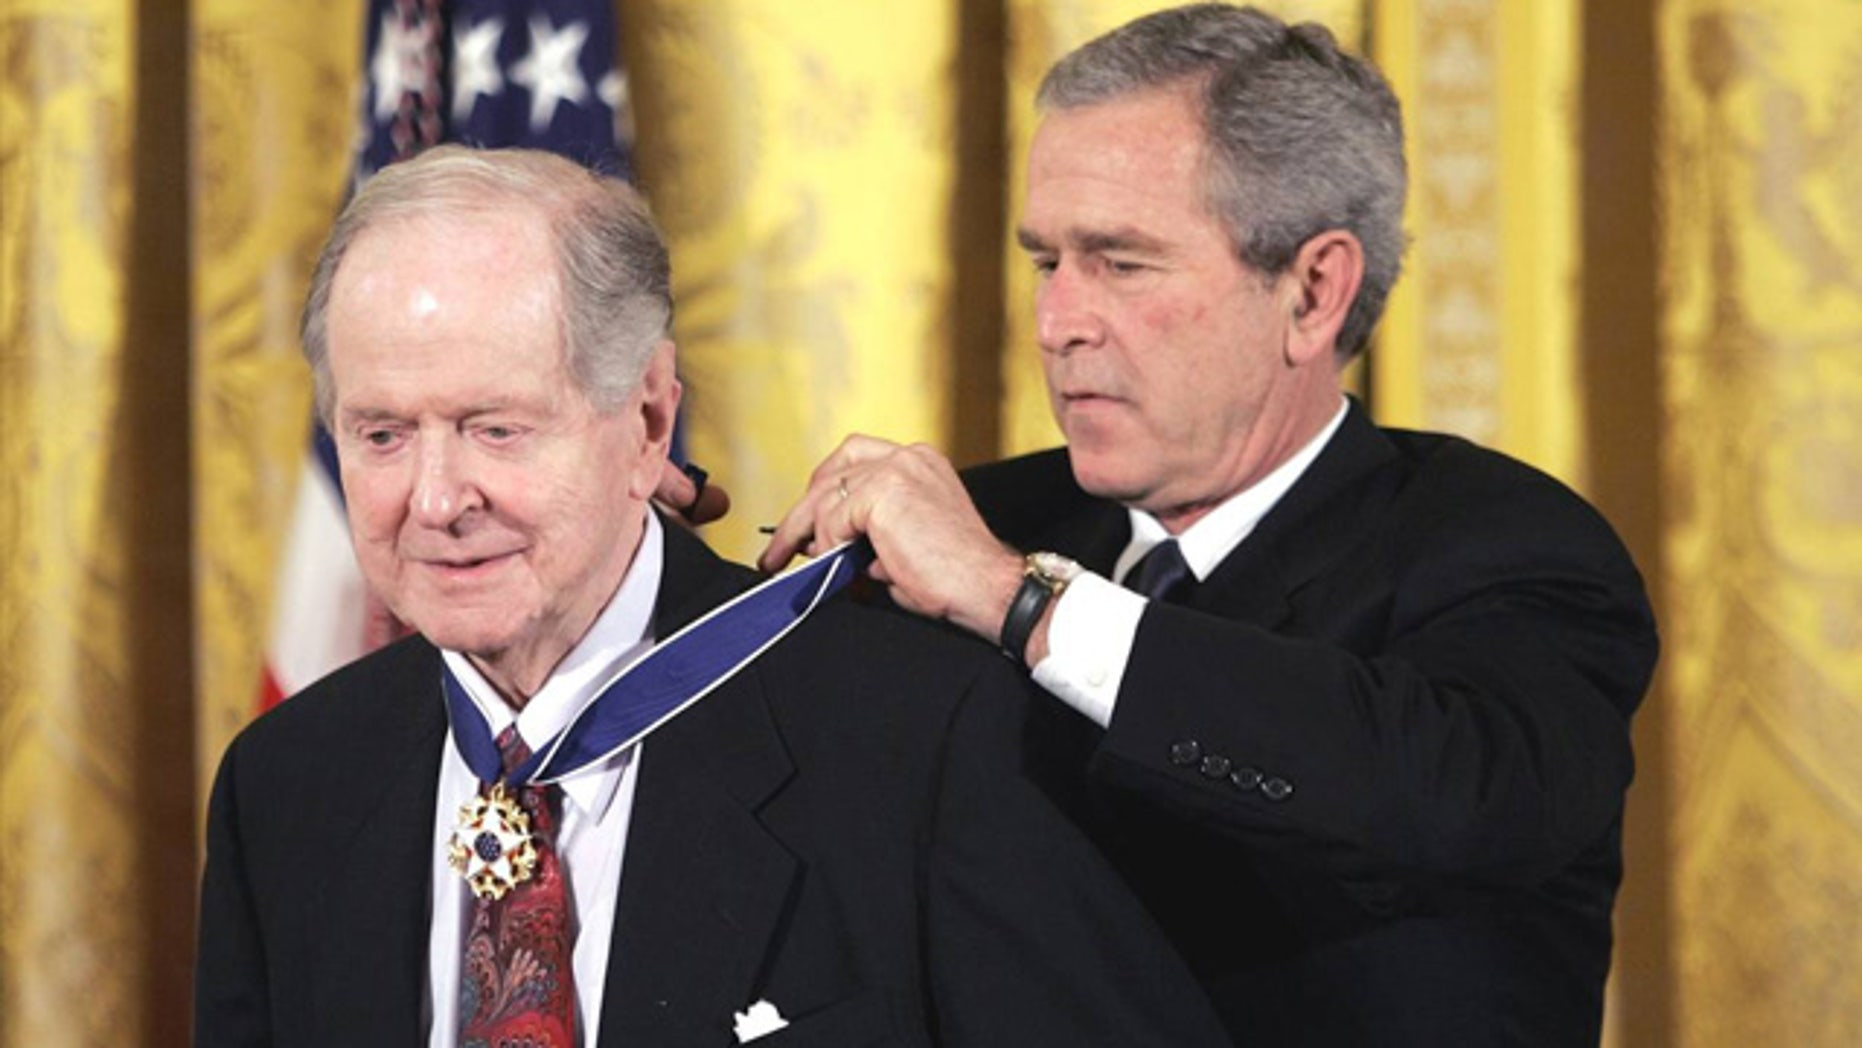 Nov. 9, 2005: Historian Robert Conquest receives the Presidential Medal of Freedom from President George W. Bush at the White House (Evan Vucci/AP)